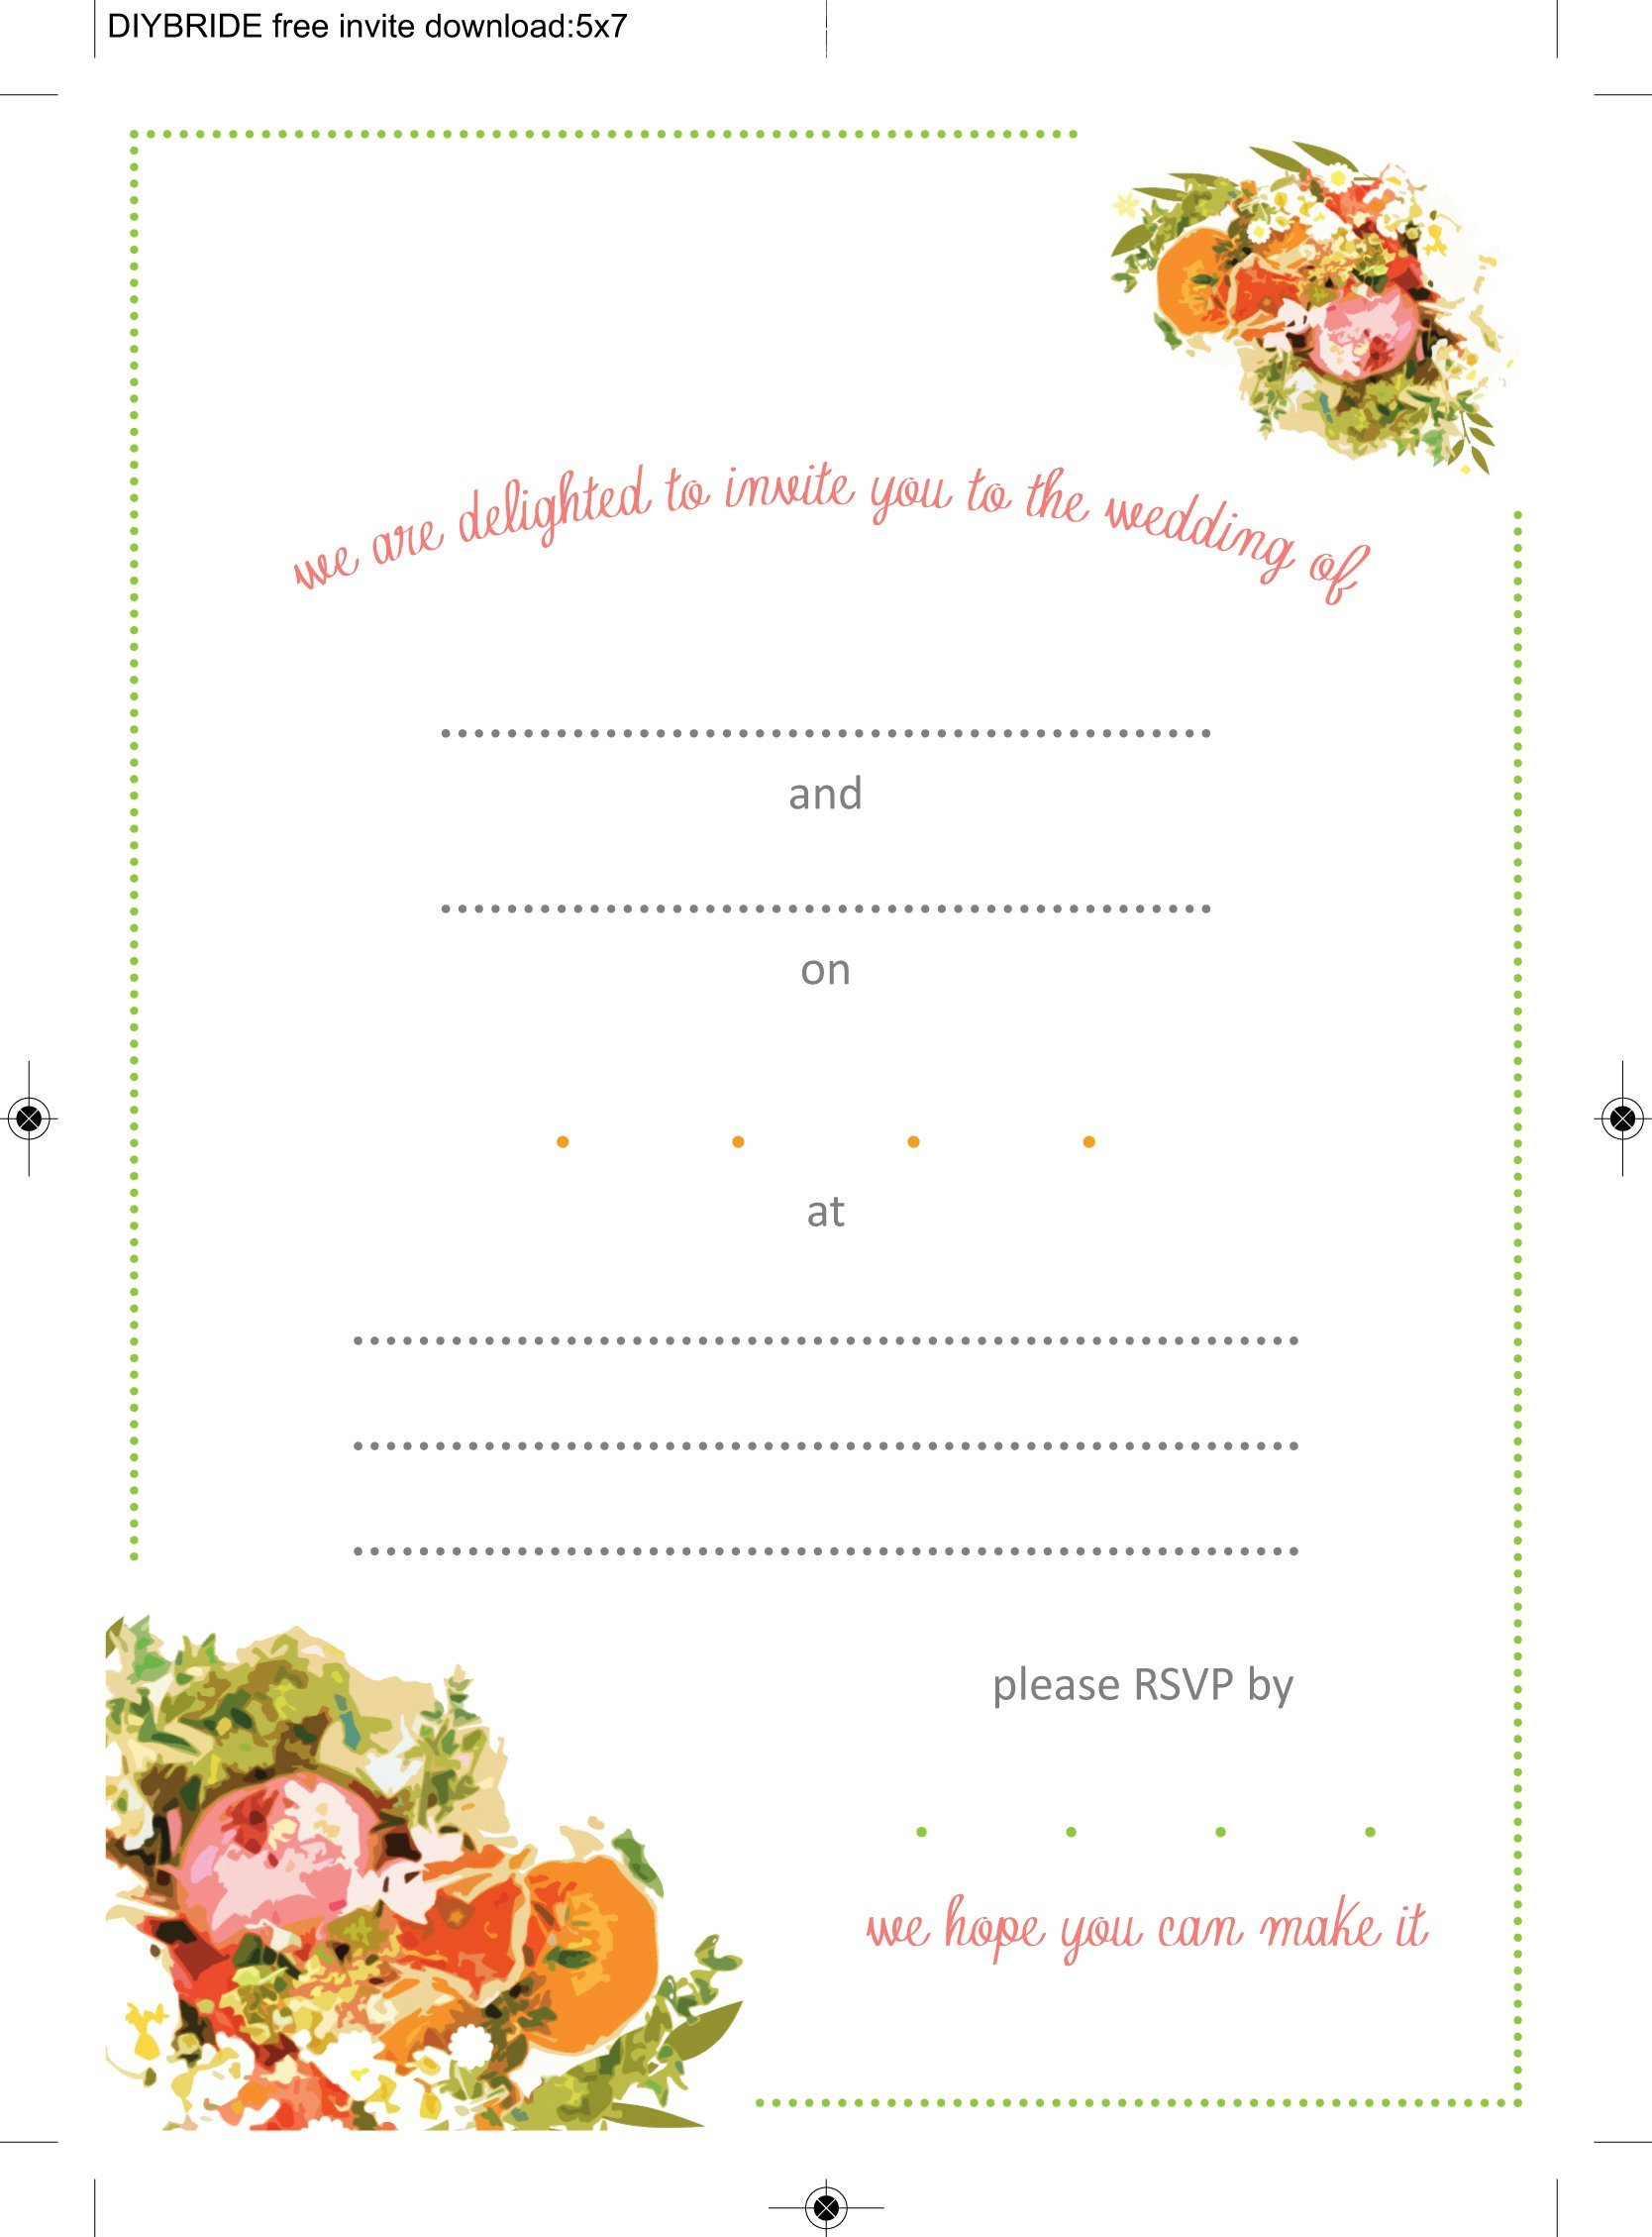 Wedding Card Template Free Download Wedding Invitation Templates that are Cute and Easy to